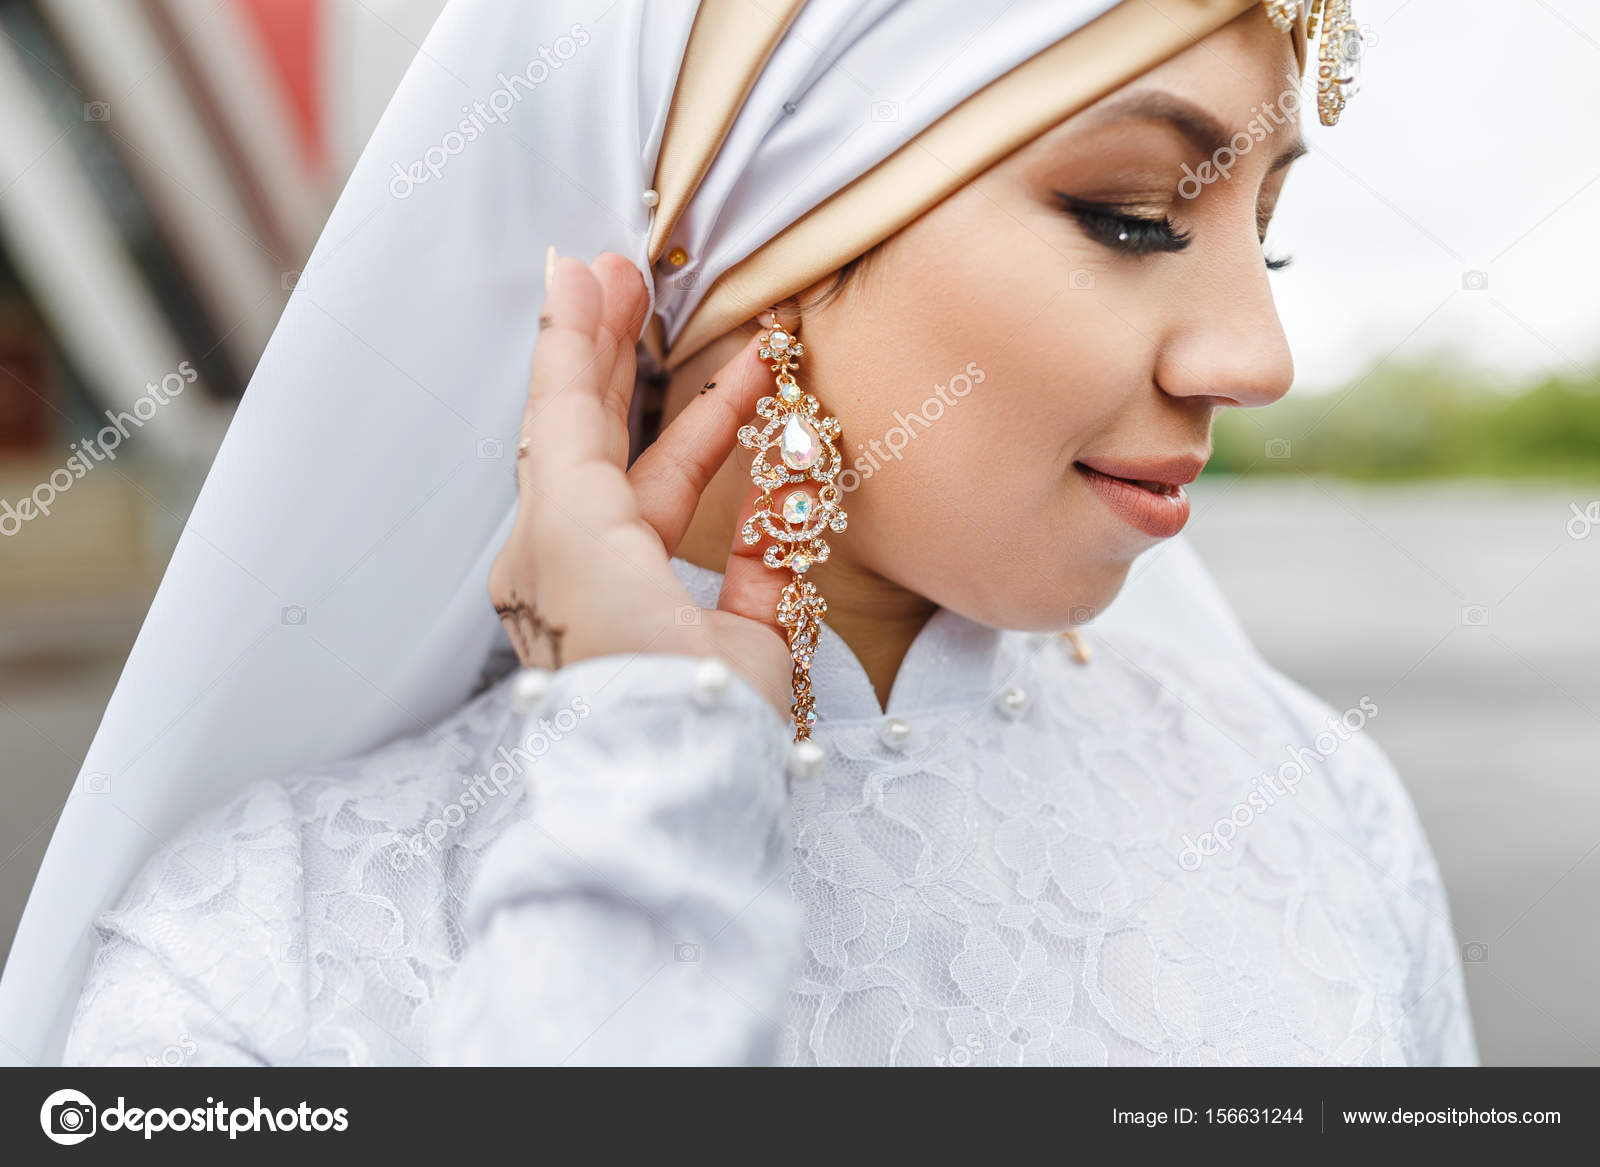 Charming muslim arabic bride in nikah wedding dress and hijab headscarf,  close-up on jewelry and earrings 20